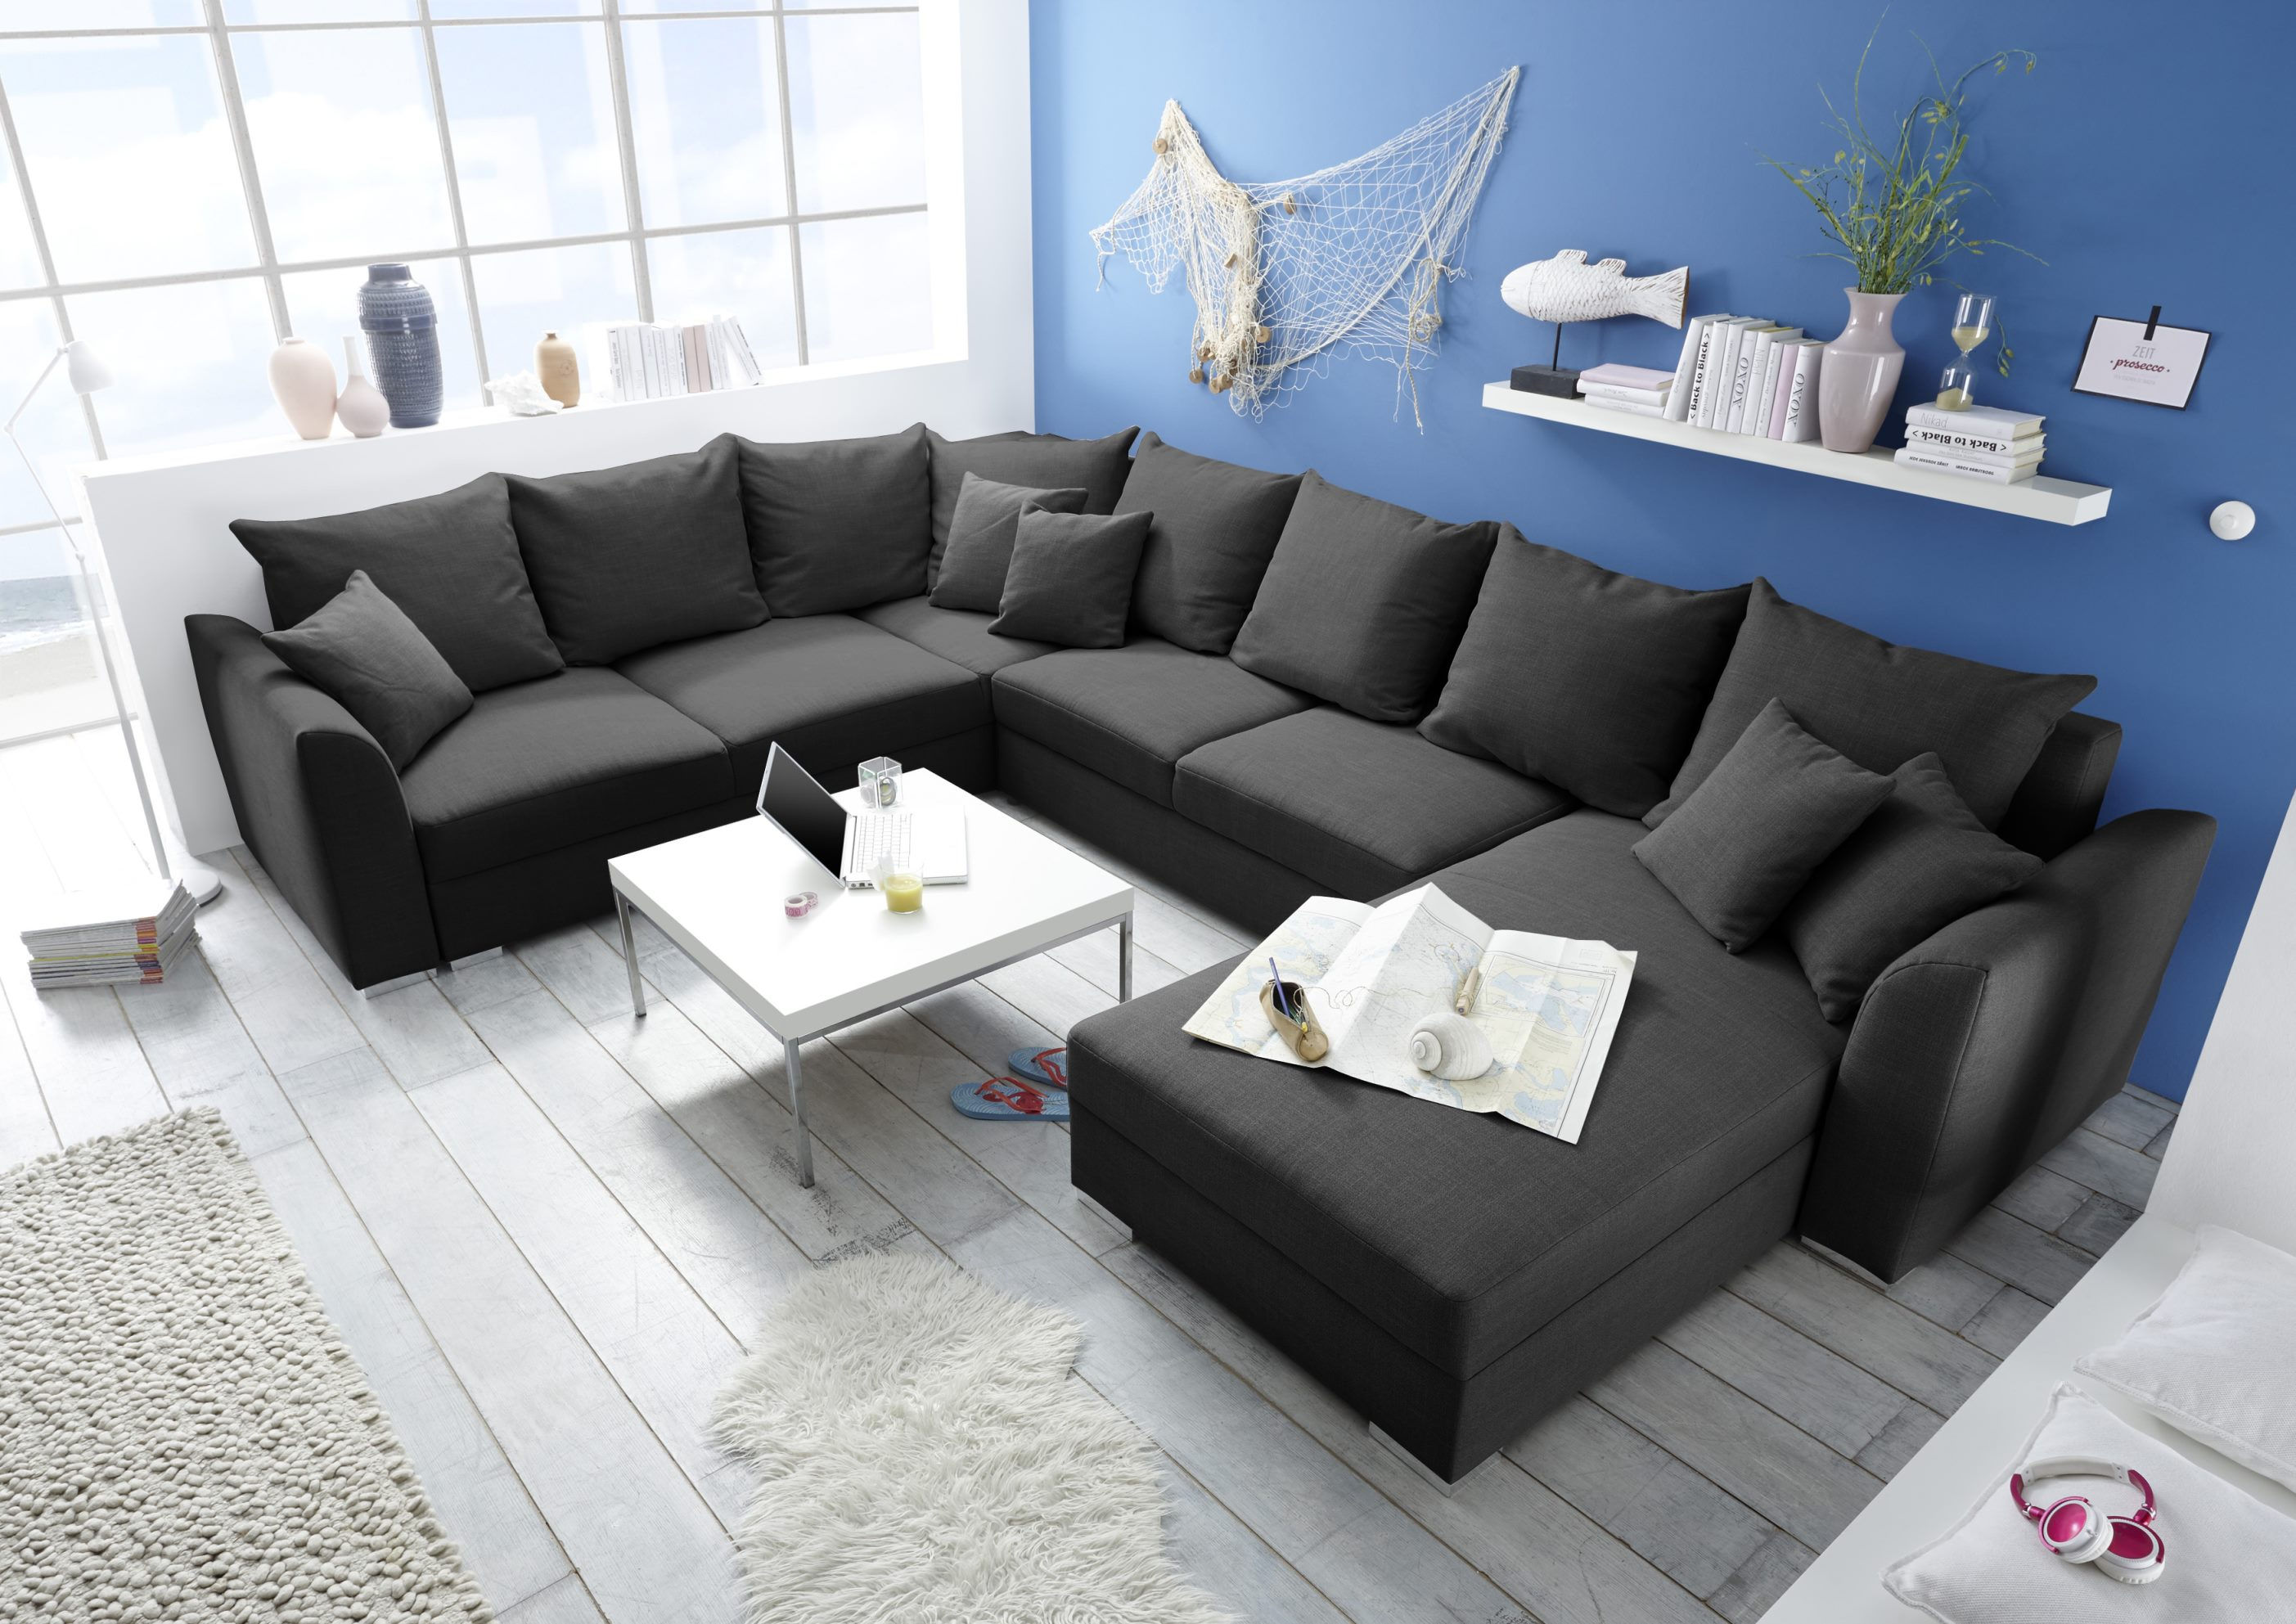 couch sofa eckcouch ecksofa schlafsofa schlafcouch. Black Bedroom Furniture Sets. Home Design Ideas